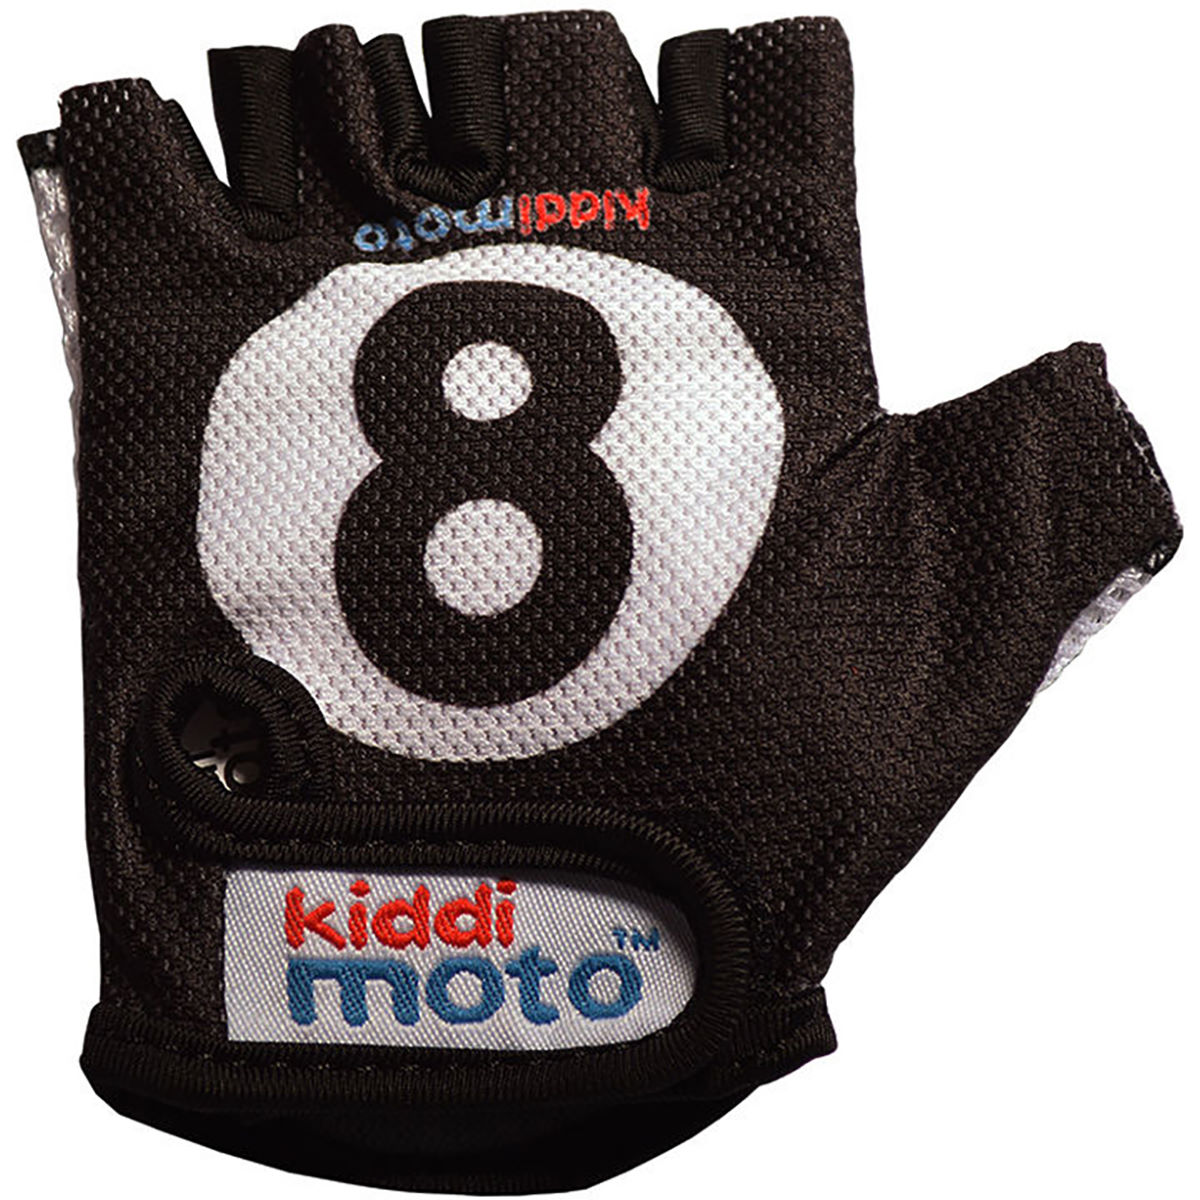 Kiddimoto 8 Ball Gloves - Guantes cortos